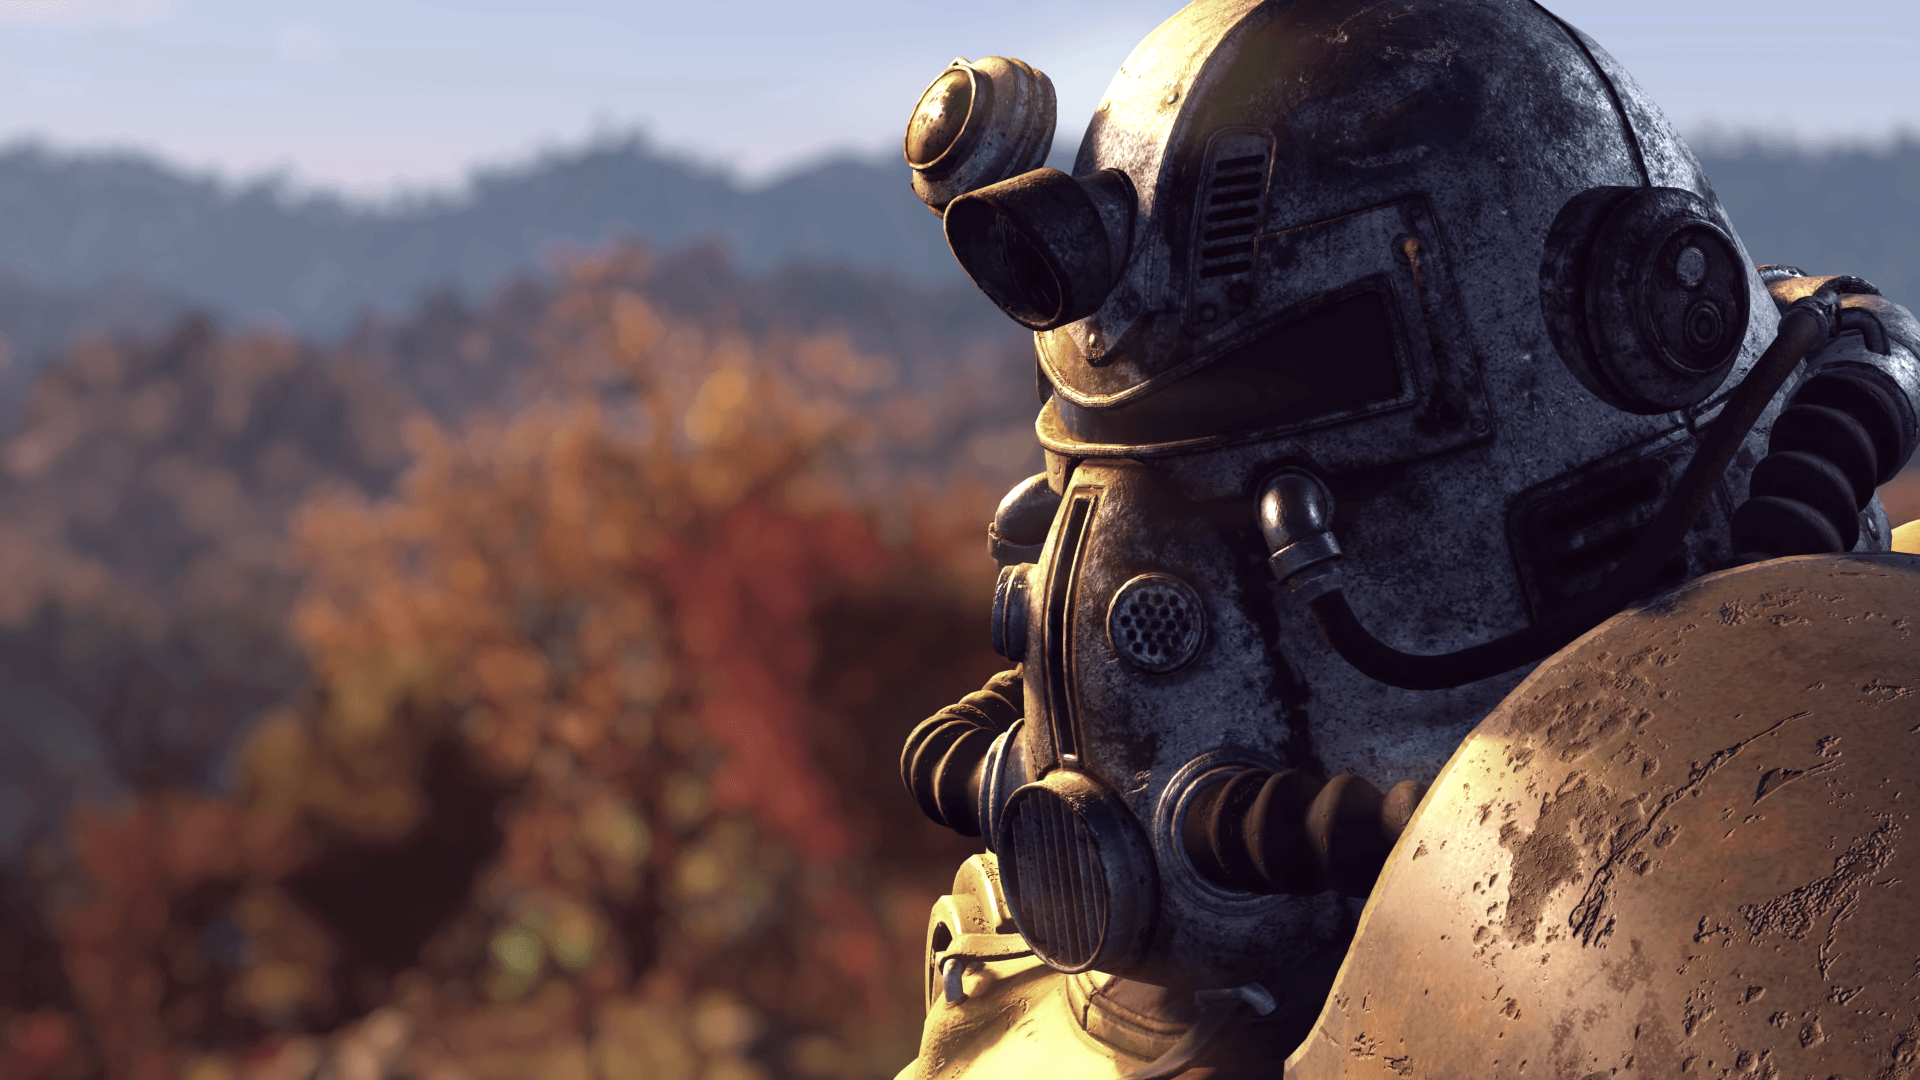 Fallout 76 HD Wallpapers - Wallpaper Cave